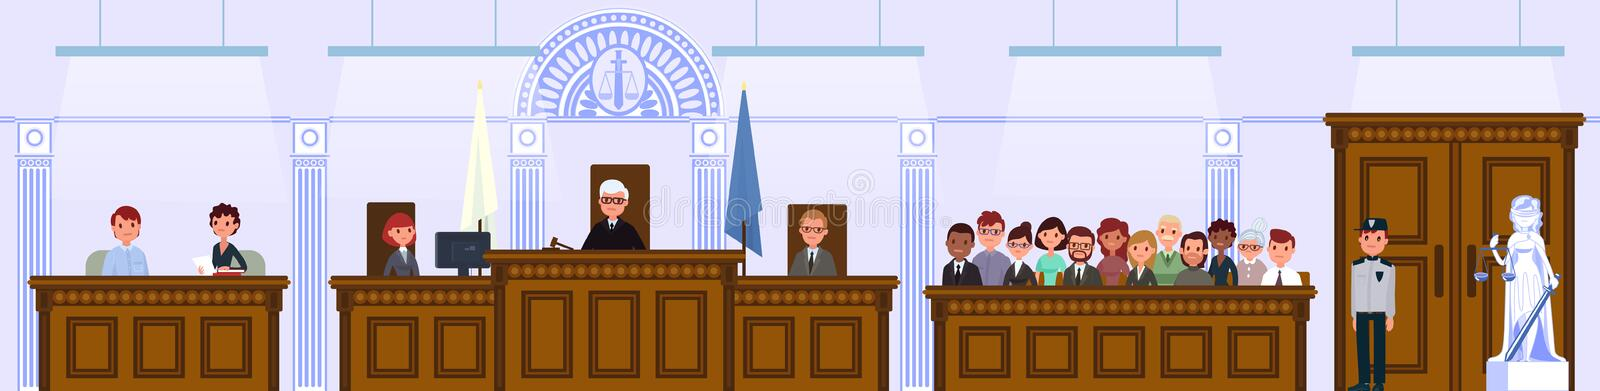 Judical court interior. The judge and the jury are sitting in the courtroom. royalty free illustration